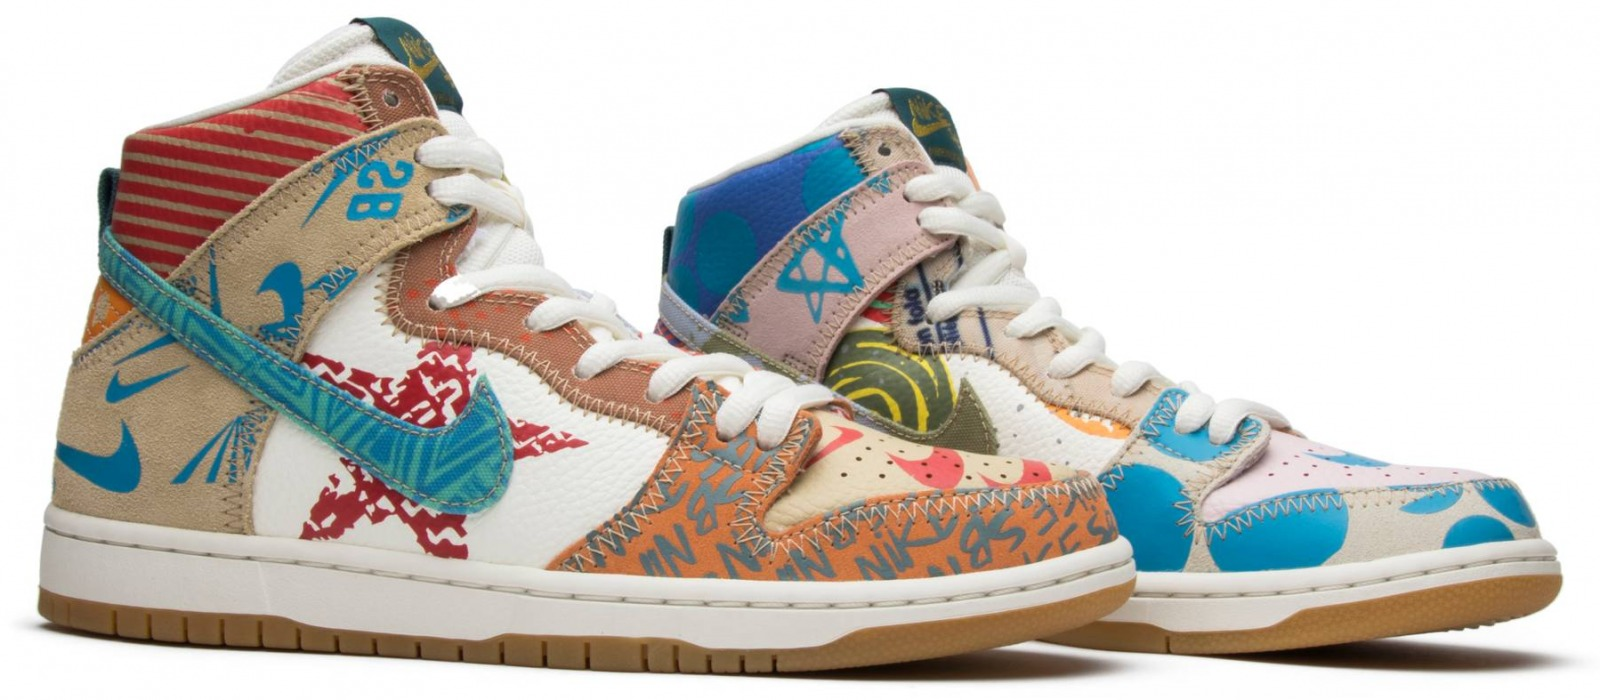 Nike Dunk SB Tony Cambell What - 1